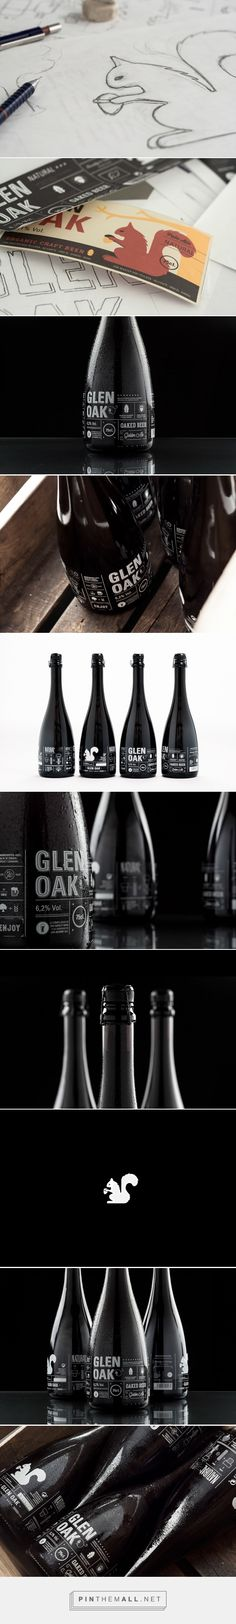 Glen Oak Craft Beer packaging design by Alex Monzo at Brandsummit (Spain) - http://www.packagingoftheworld.com/2016/05/glen-oak.html